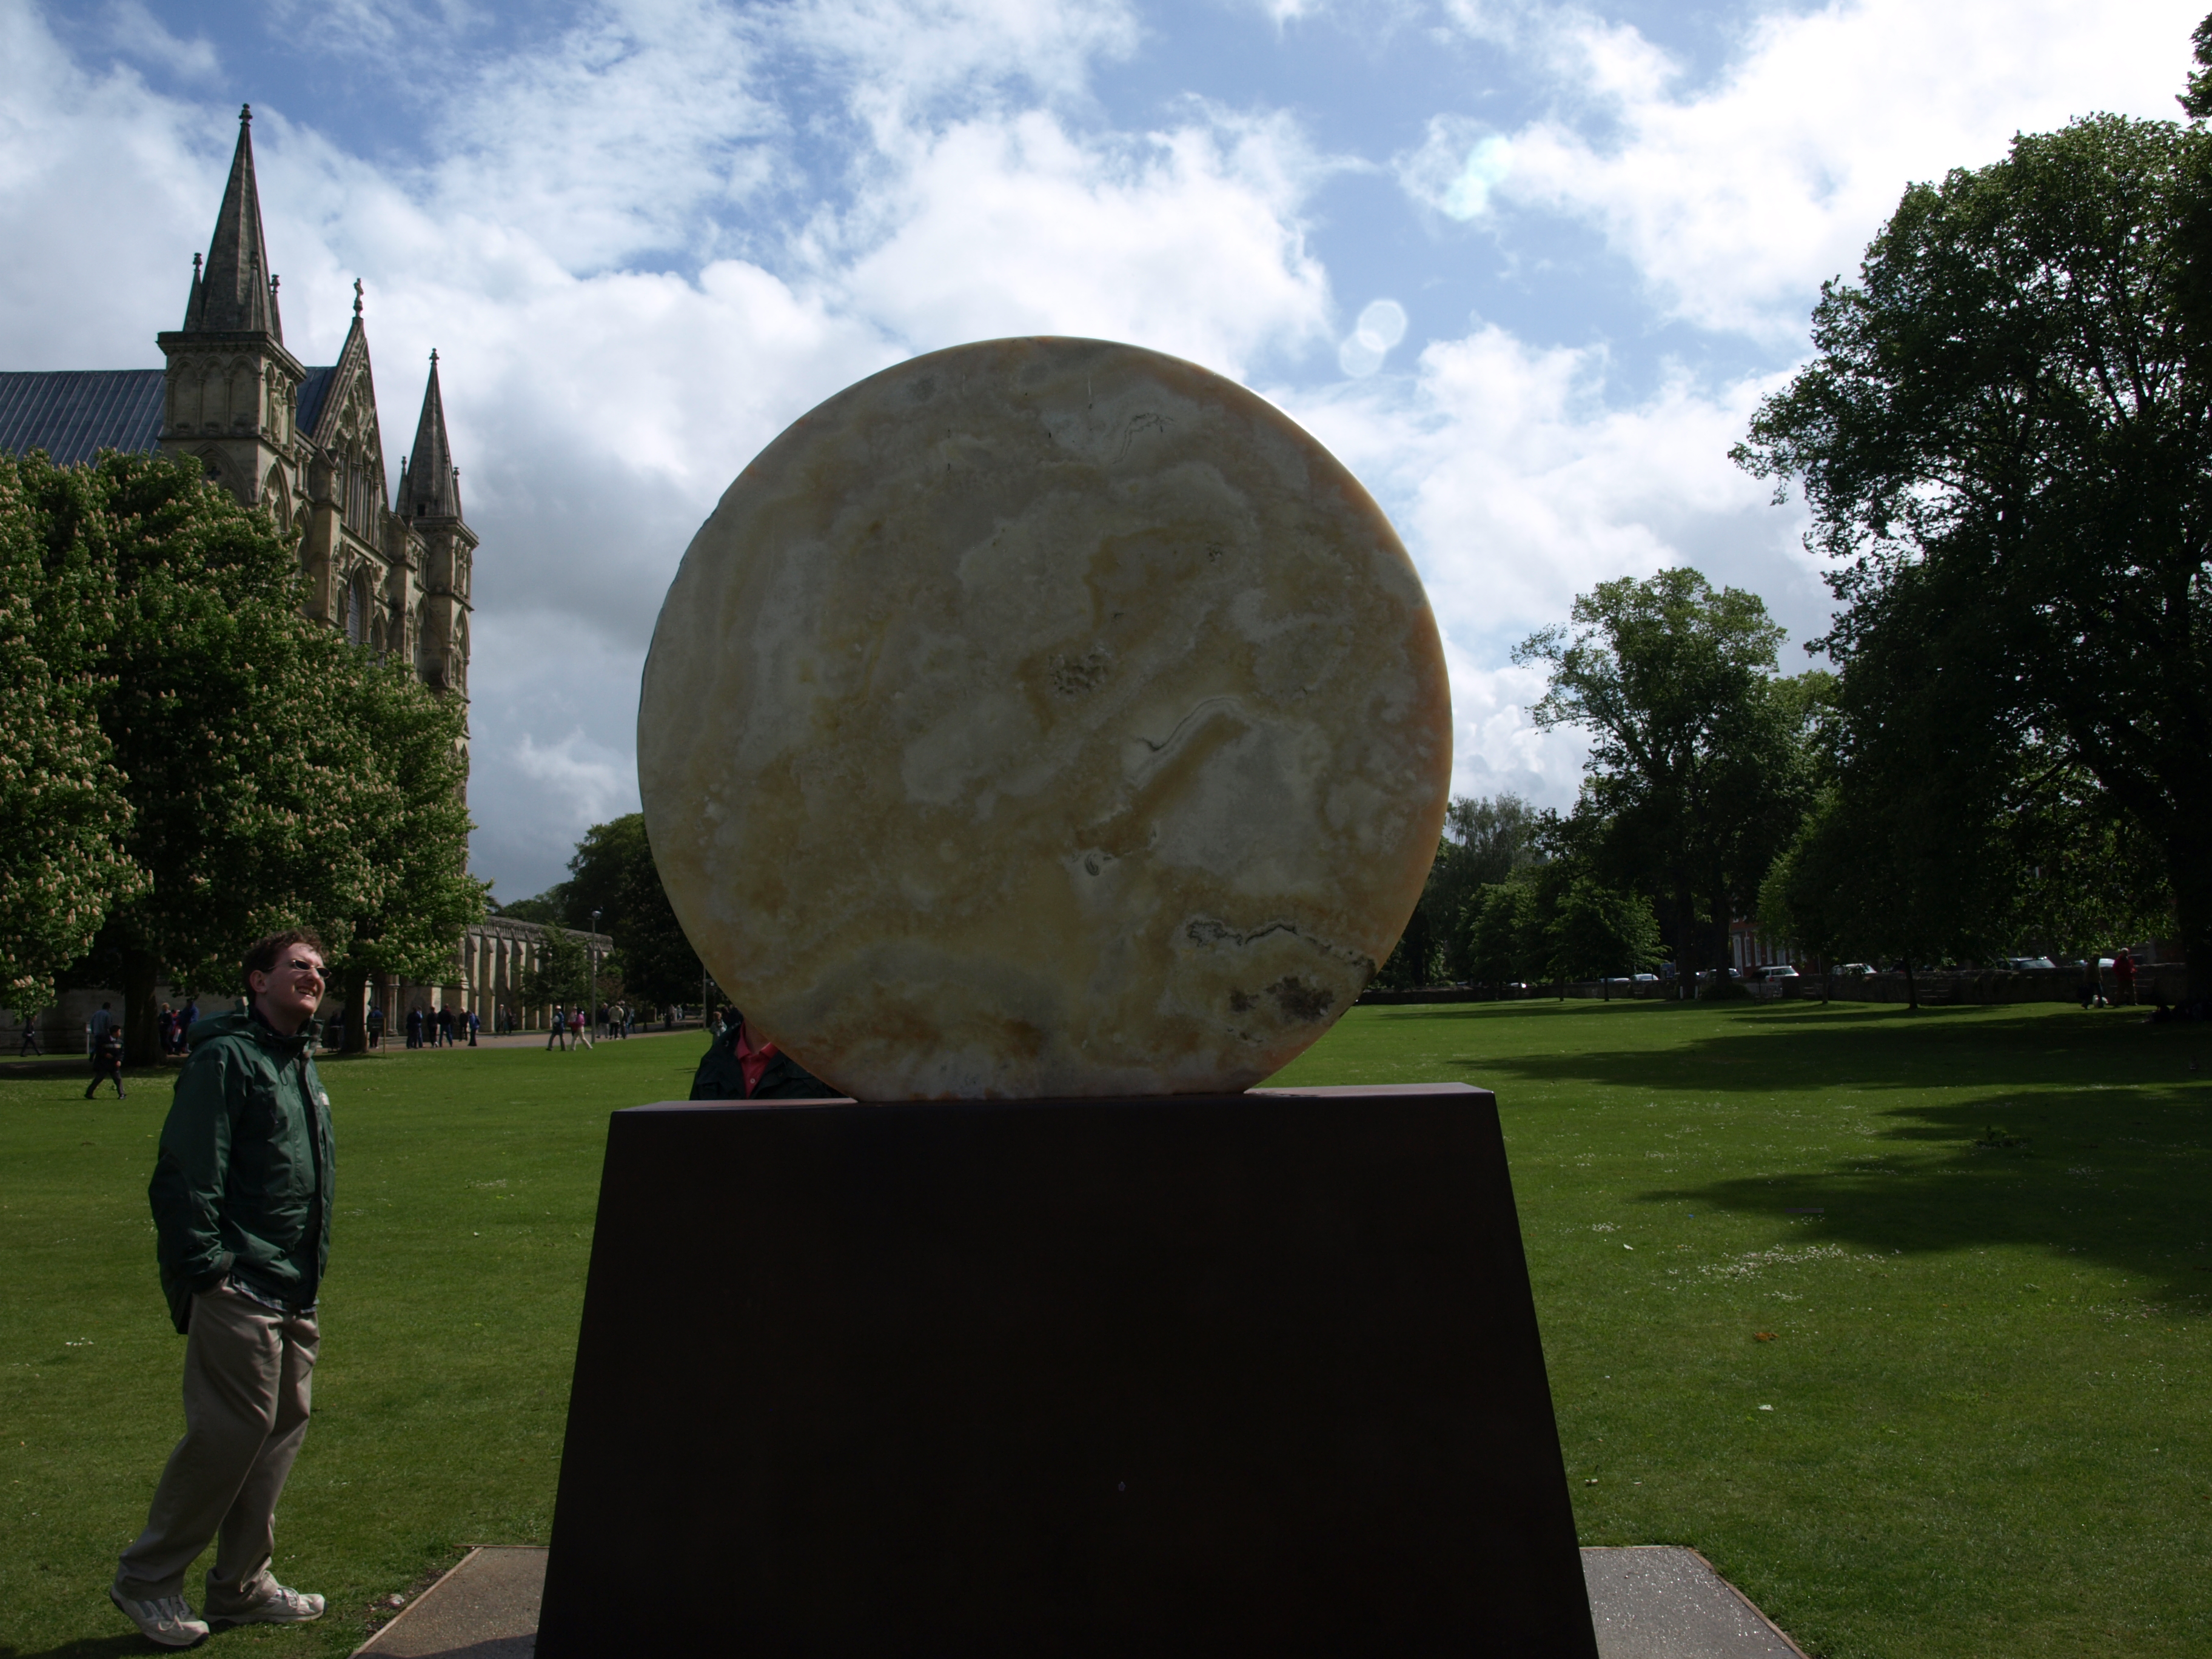 Alex Gazing Upon the Lunar Disc